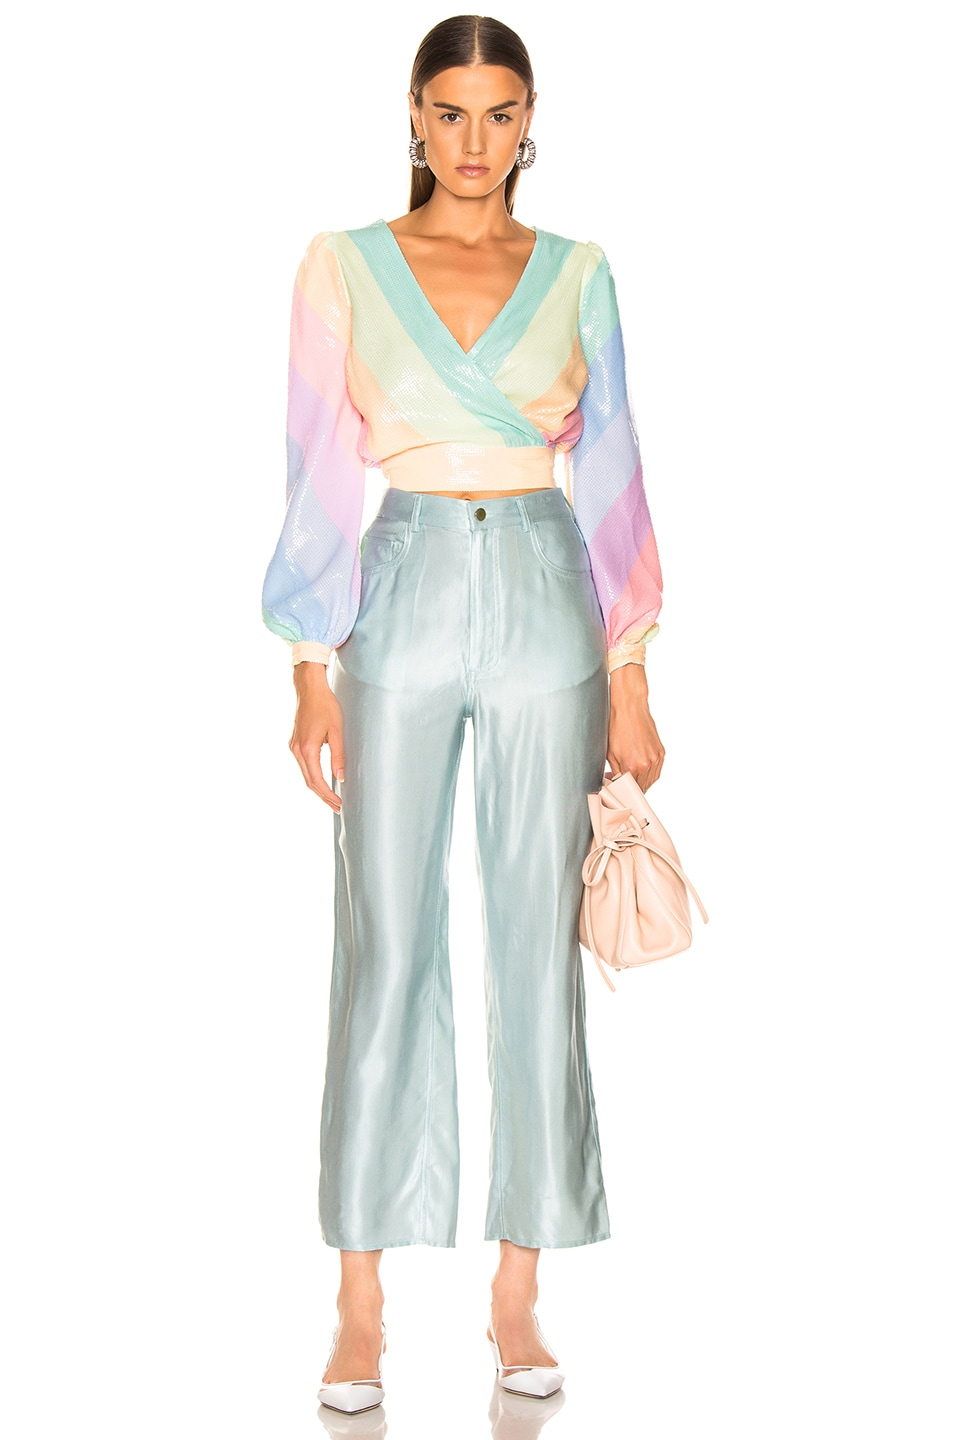 Image 4 of Olivia Rubin for FWRD Kendall Top in Pastel Rainbow